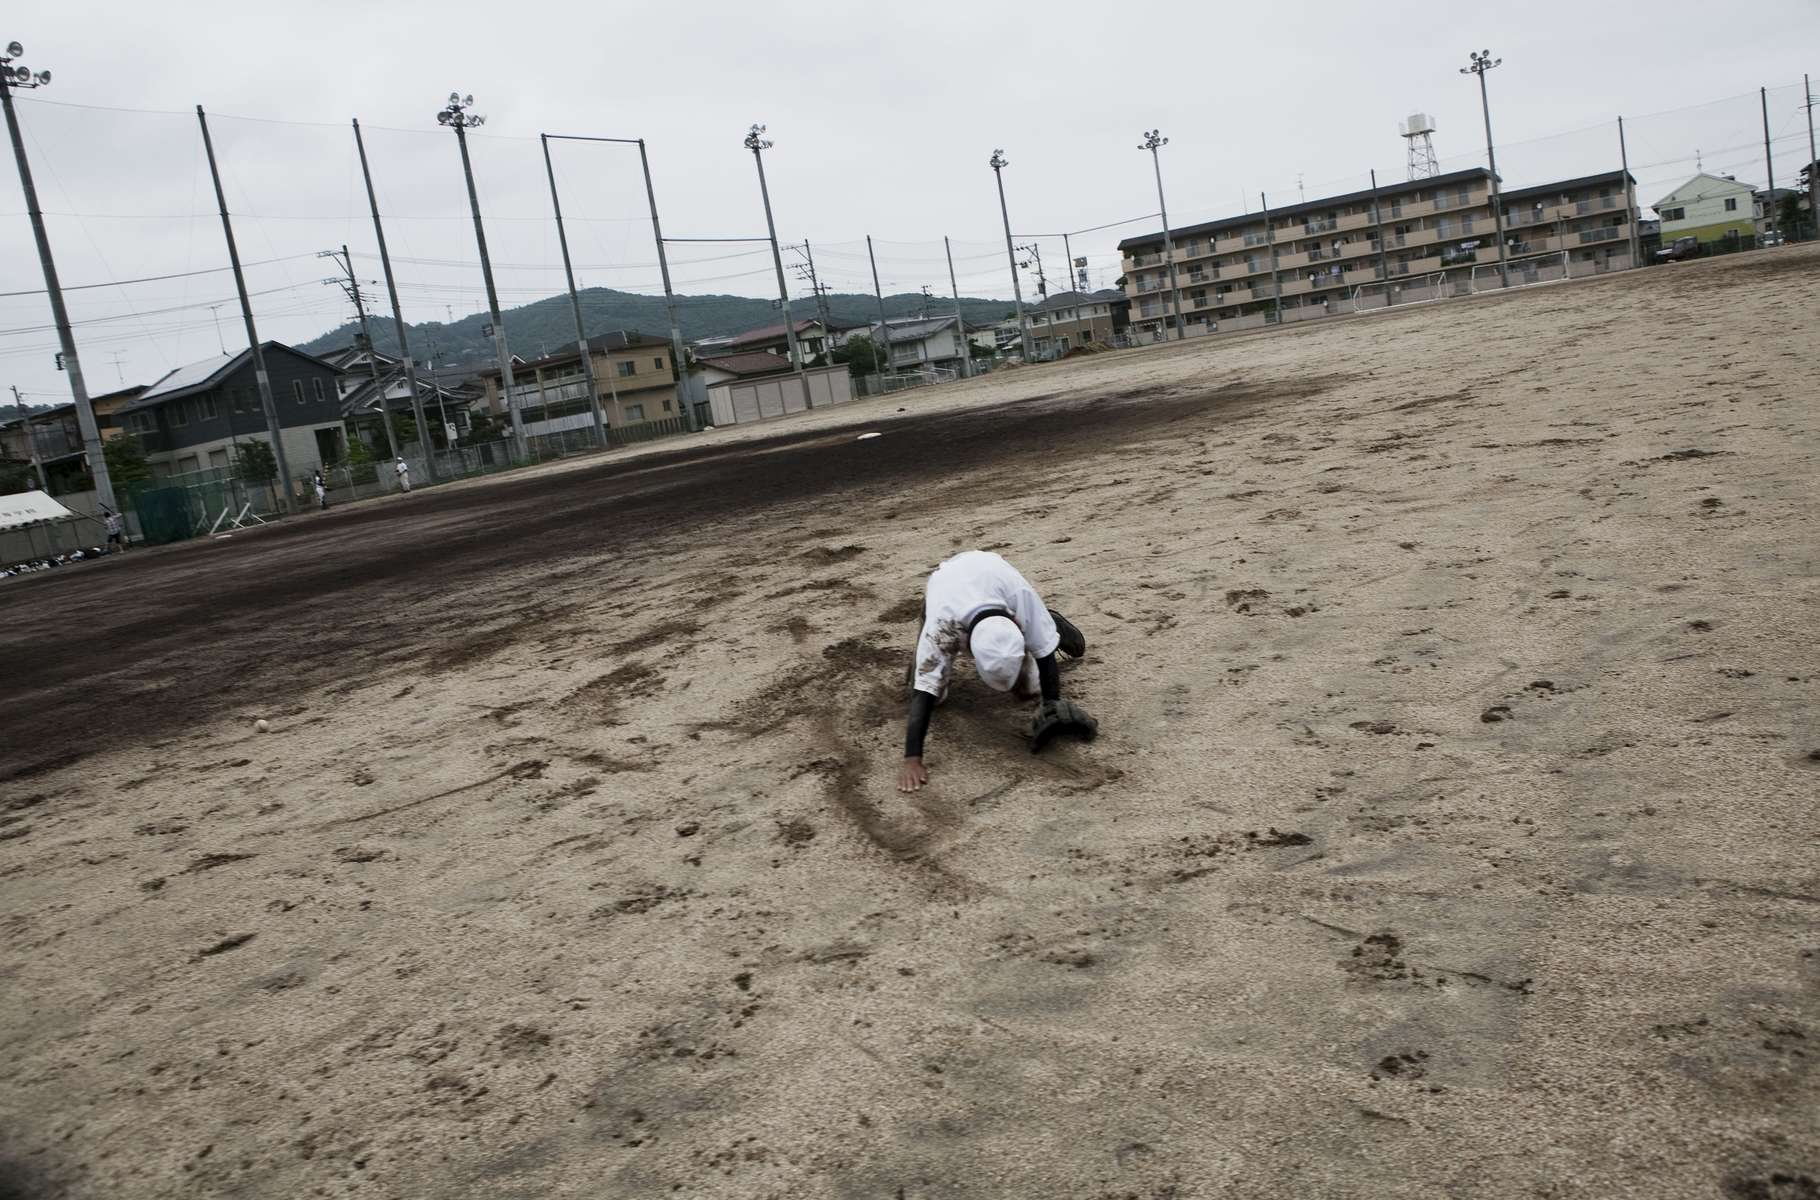 Kenta Yamaki, 17, whose grandmother died due to the tsunami and school was closed due to the Fukushima Daiichi nuclear disaster, falls down to the playground during the baseball training. Aug/ 2011, Fukushima-city.